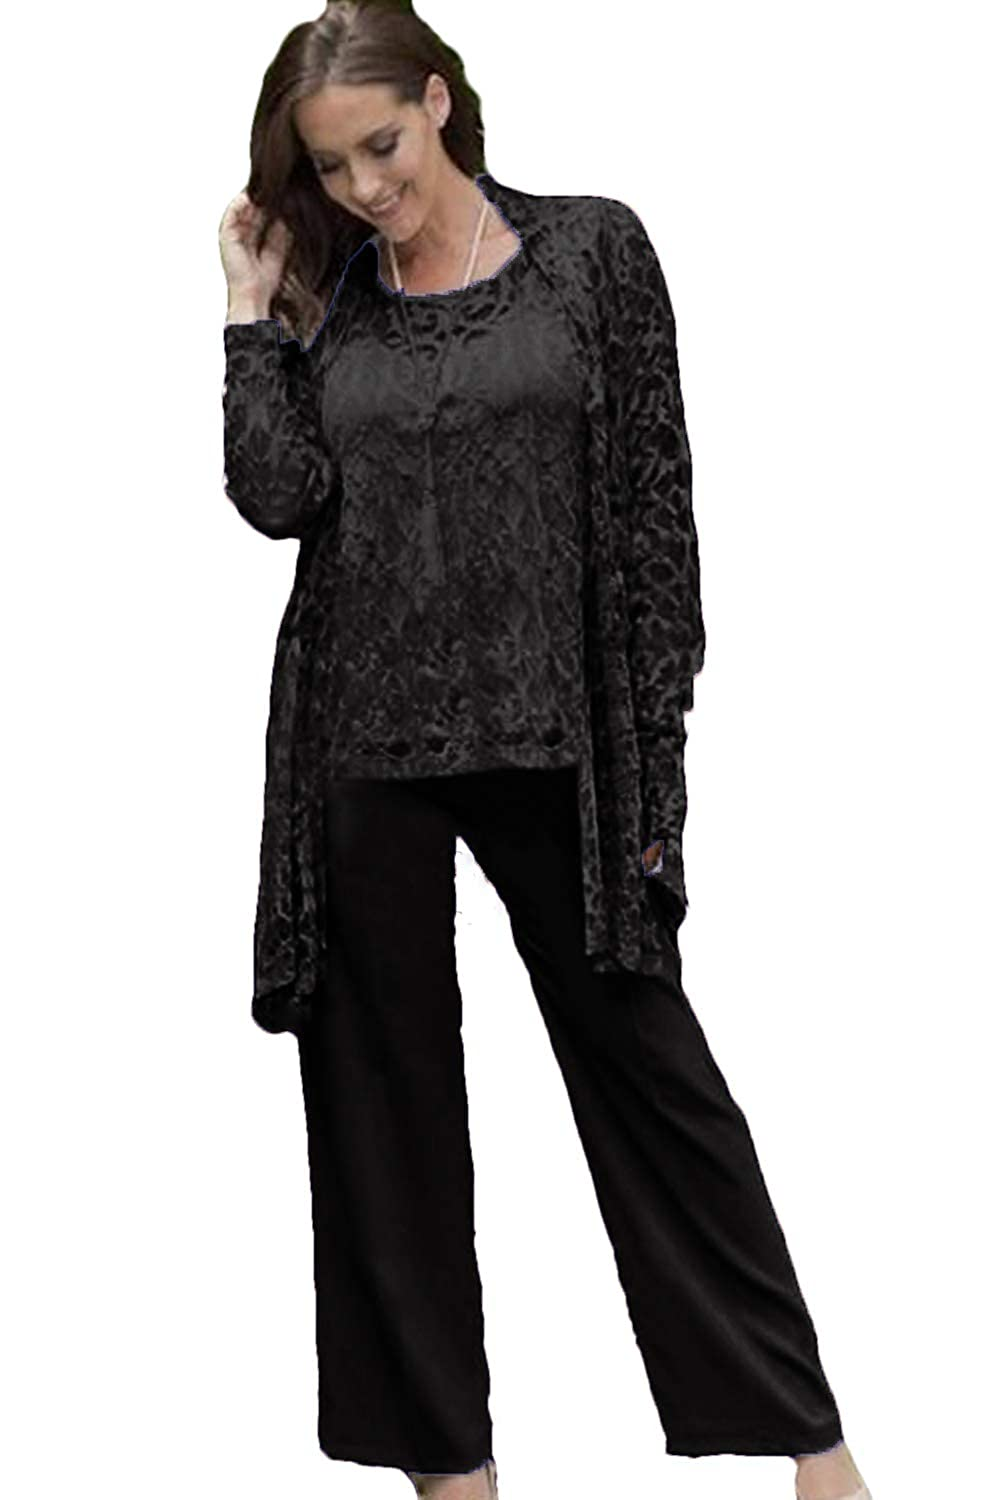 393964f63ef WZW Lace Mother of The Bride Pant Suits with Jackets Wedding Guest Dress  Plus Size Chiffon Mothers Groom at Amazon Women s Clothing store